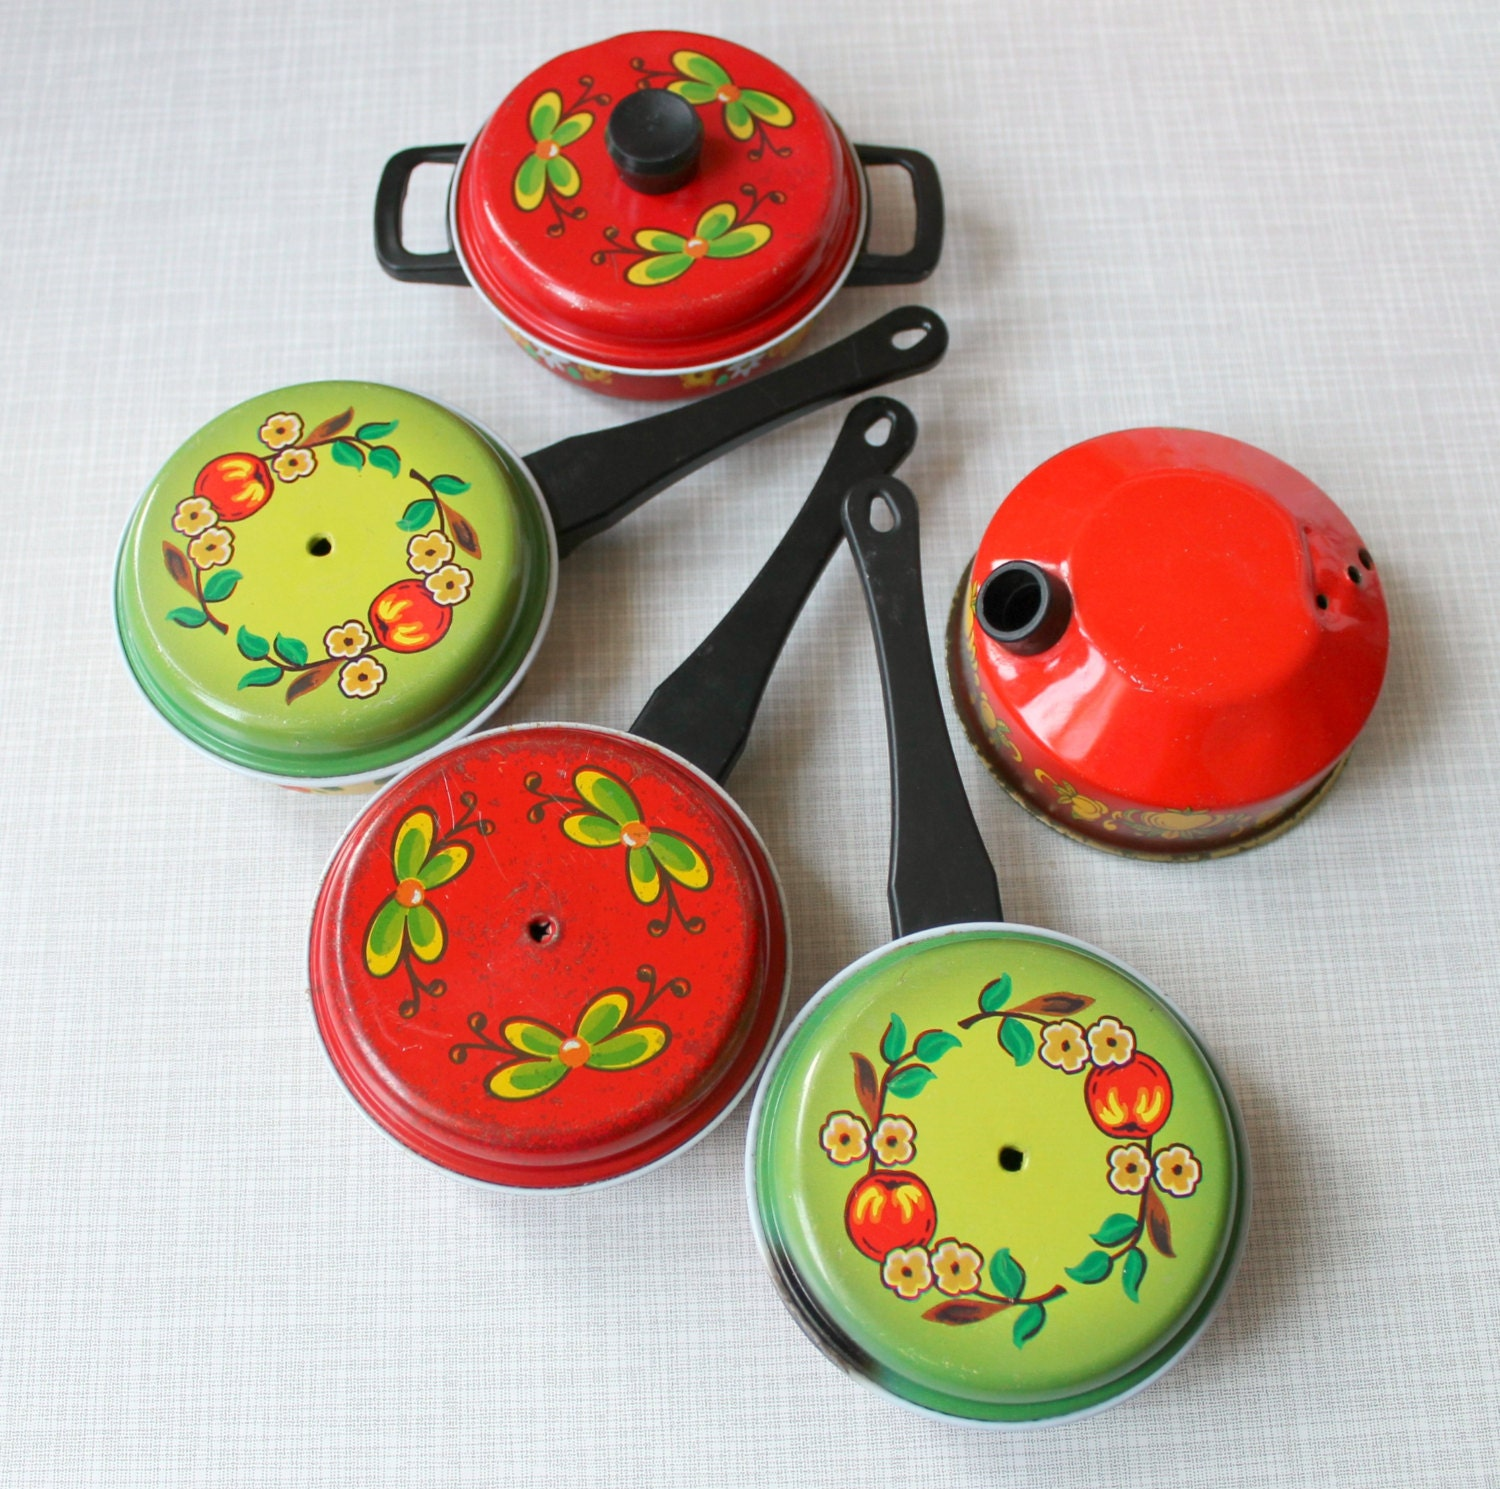 Toy Pots And Pans : Vintage children s tin toy pots and pans kettle retro